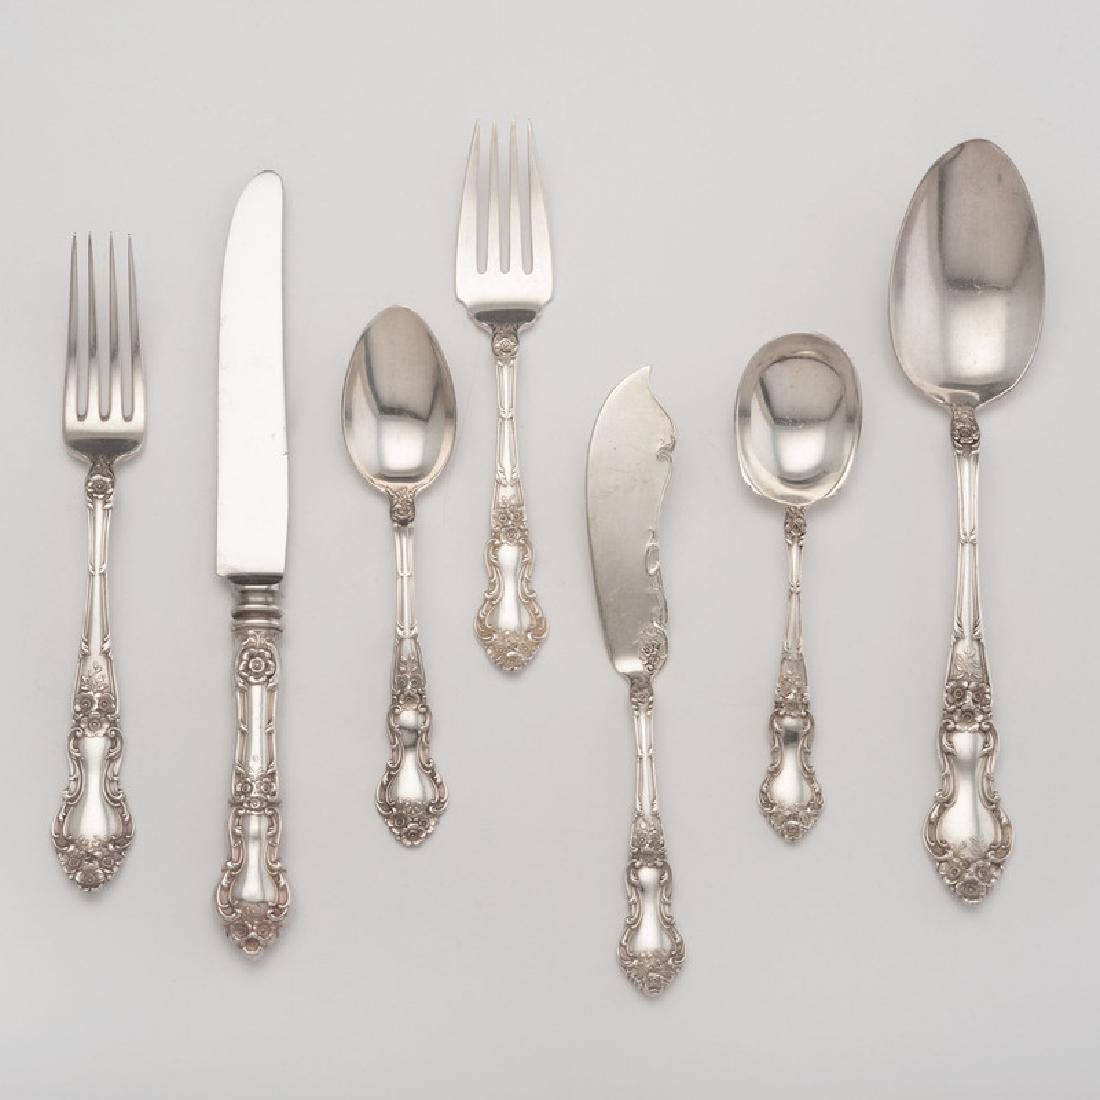 Watson Company Sterling Flatware, Meadow Rose